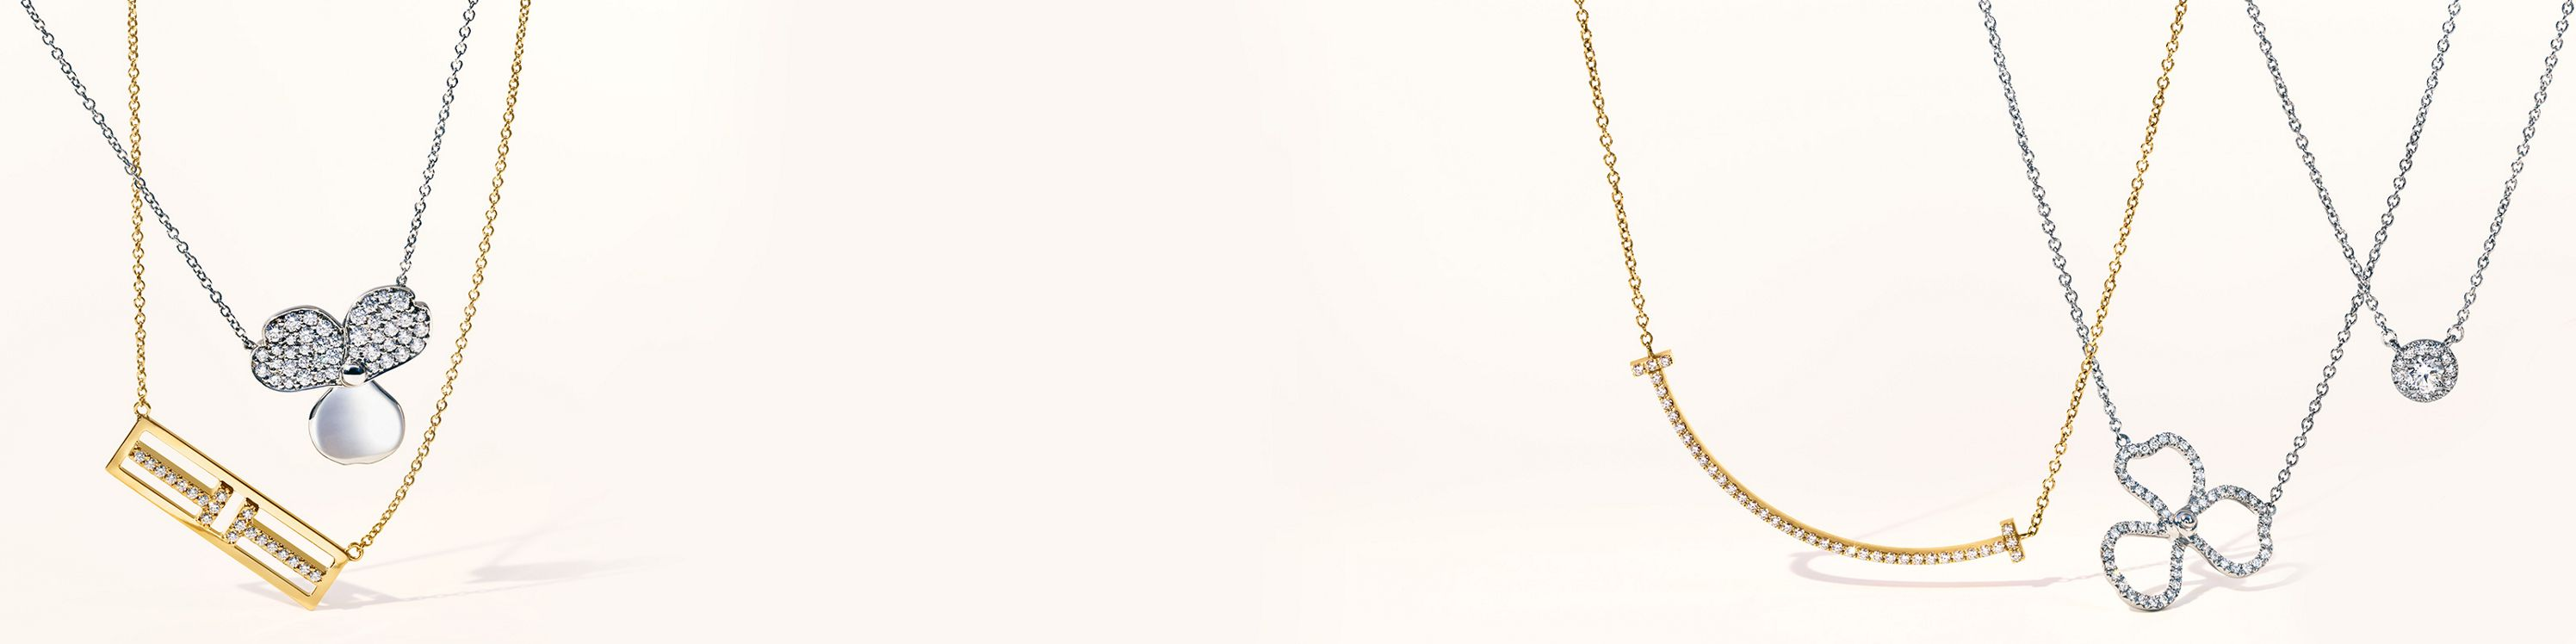 collier femme trackid=sp-006